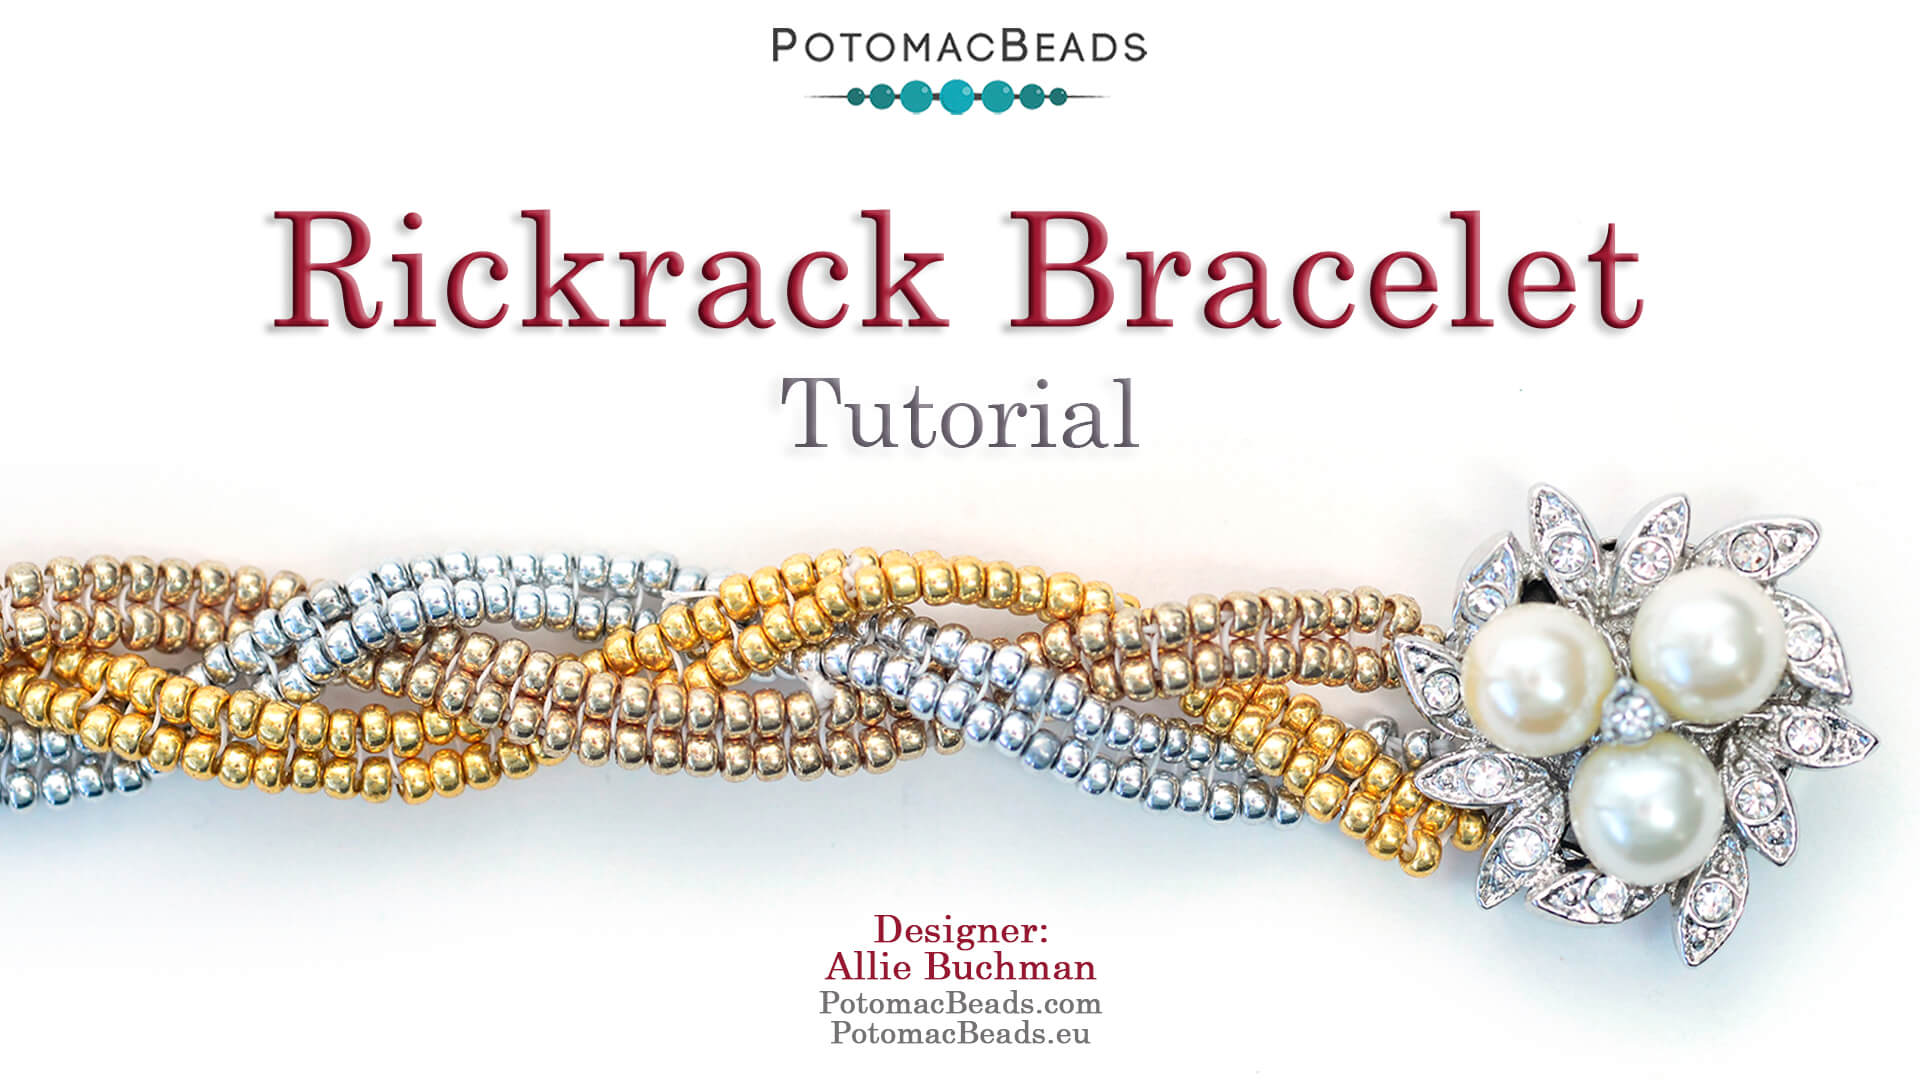 How to Bead / Videos Sorted by Beads / Seed Bead Only Videos / Rickrack Bracelet Tutorial